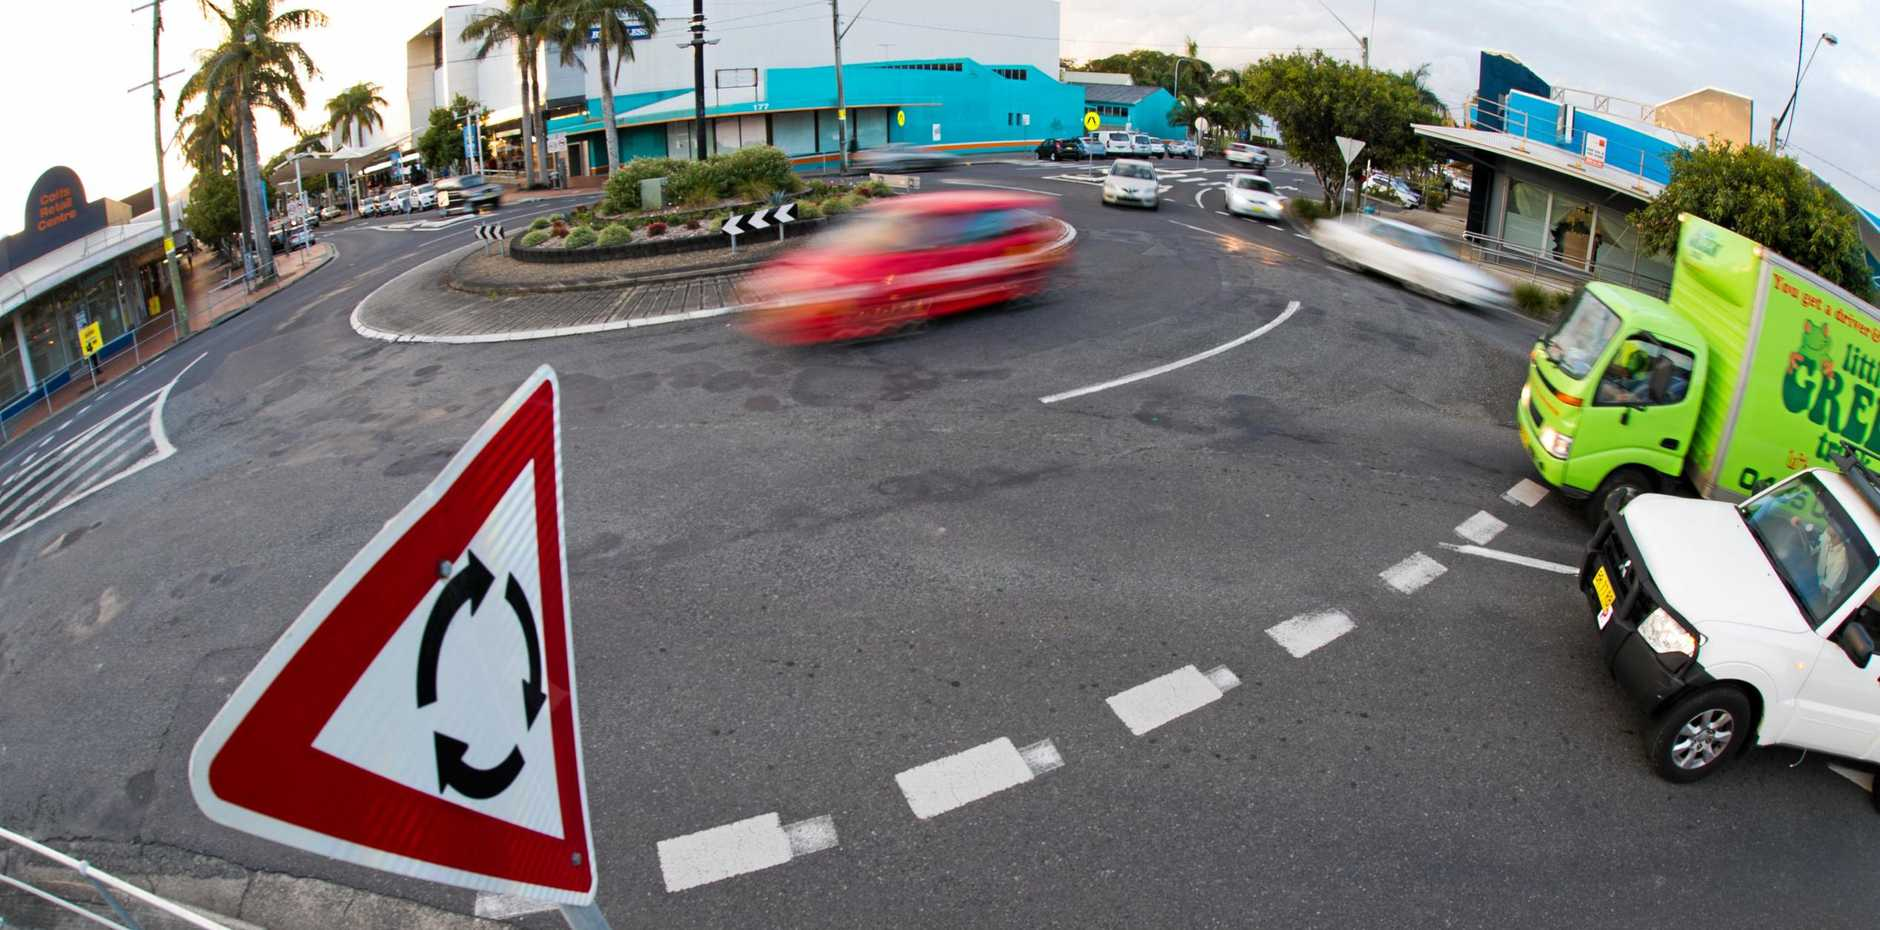 Do you know the indication rules on a roundabout?